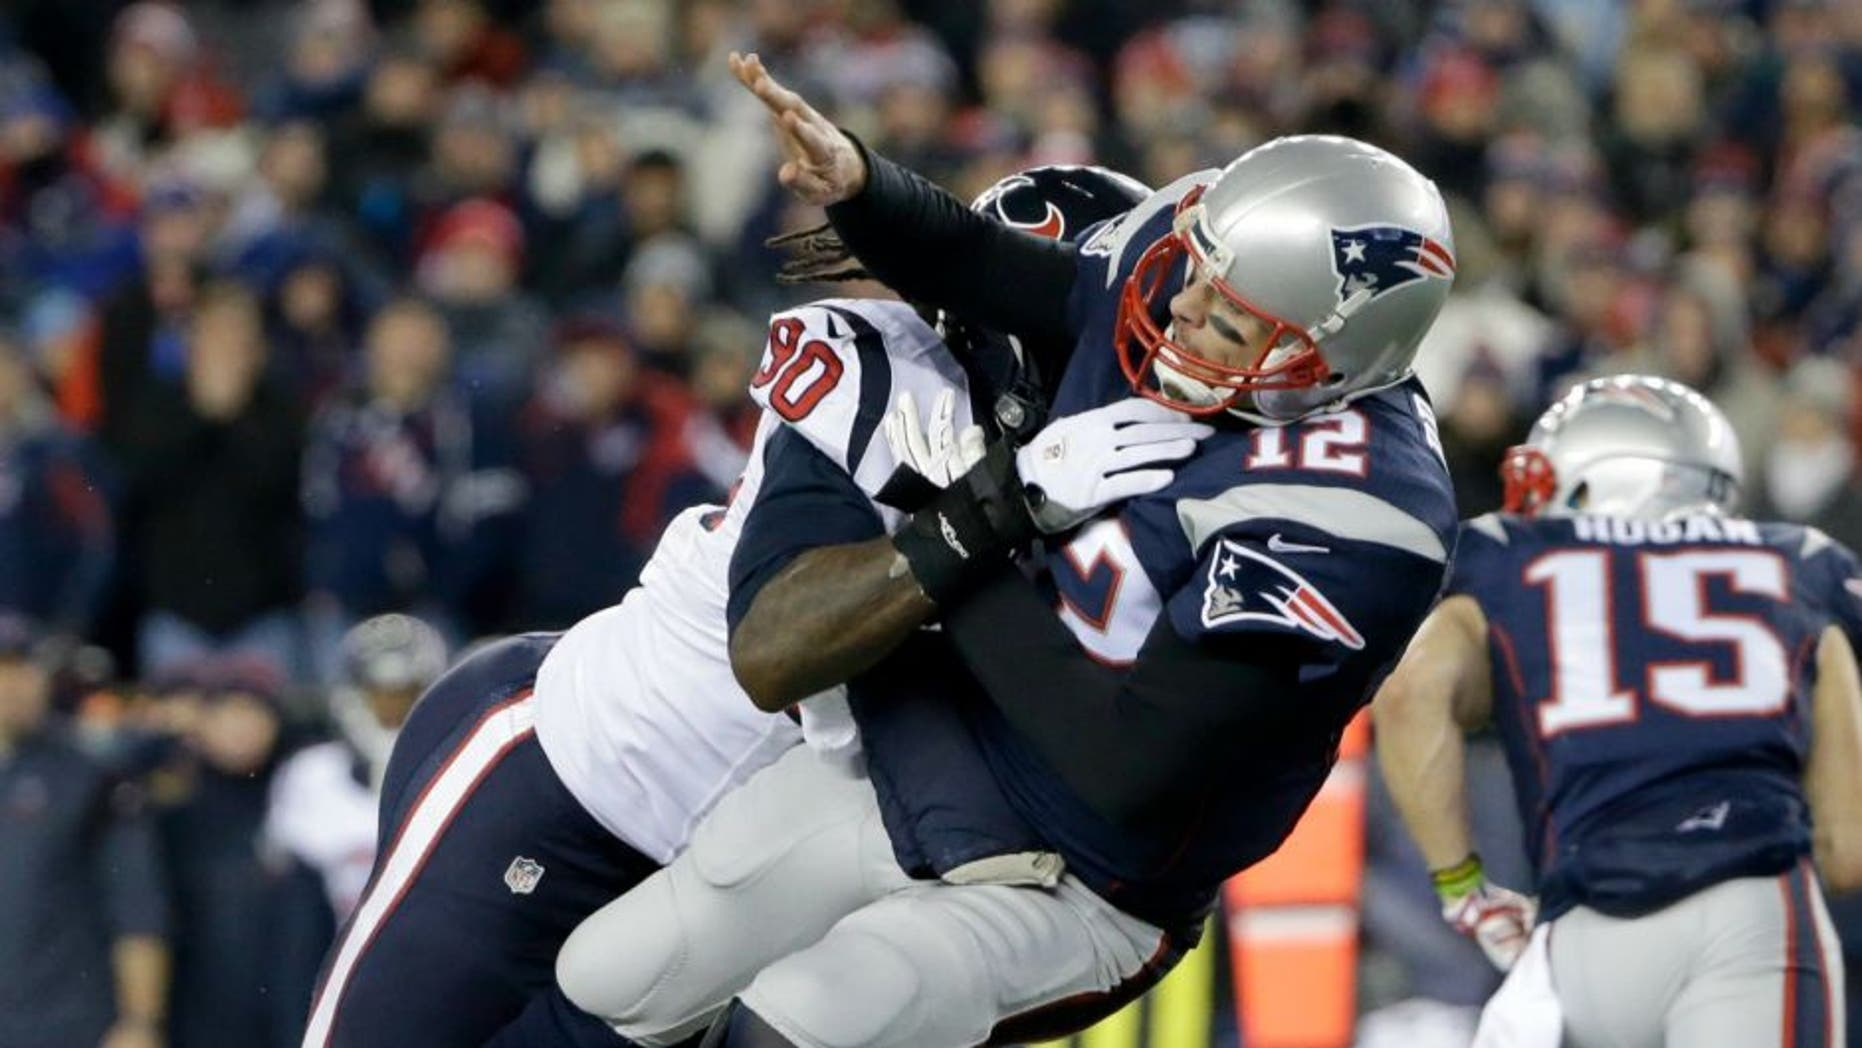 Houston Texans defensive end Jadeveon Clowney (90) levels New England Patriots quarterback Tom Brady (12) after he threw a pass during the first half of an NFL divisional playoff football game, Saturday, Jan. 14, 2017, in Foxborough, Mass. (AP Photo/Elise Amendola)